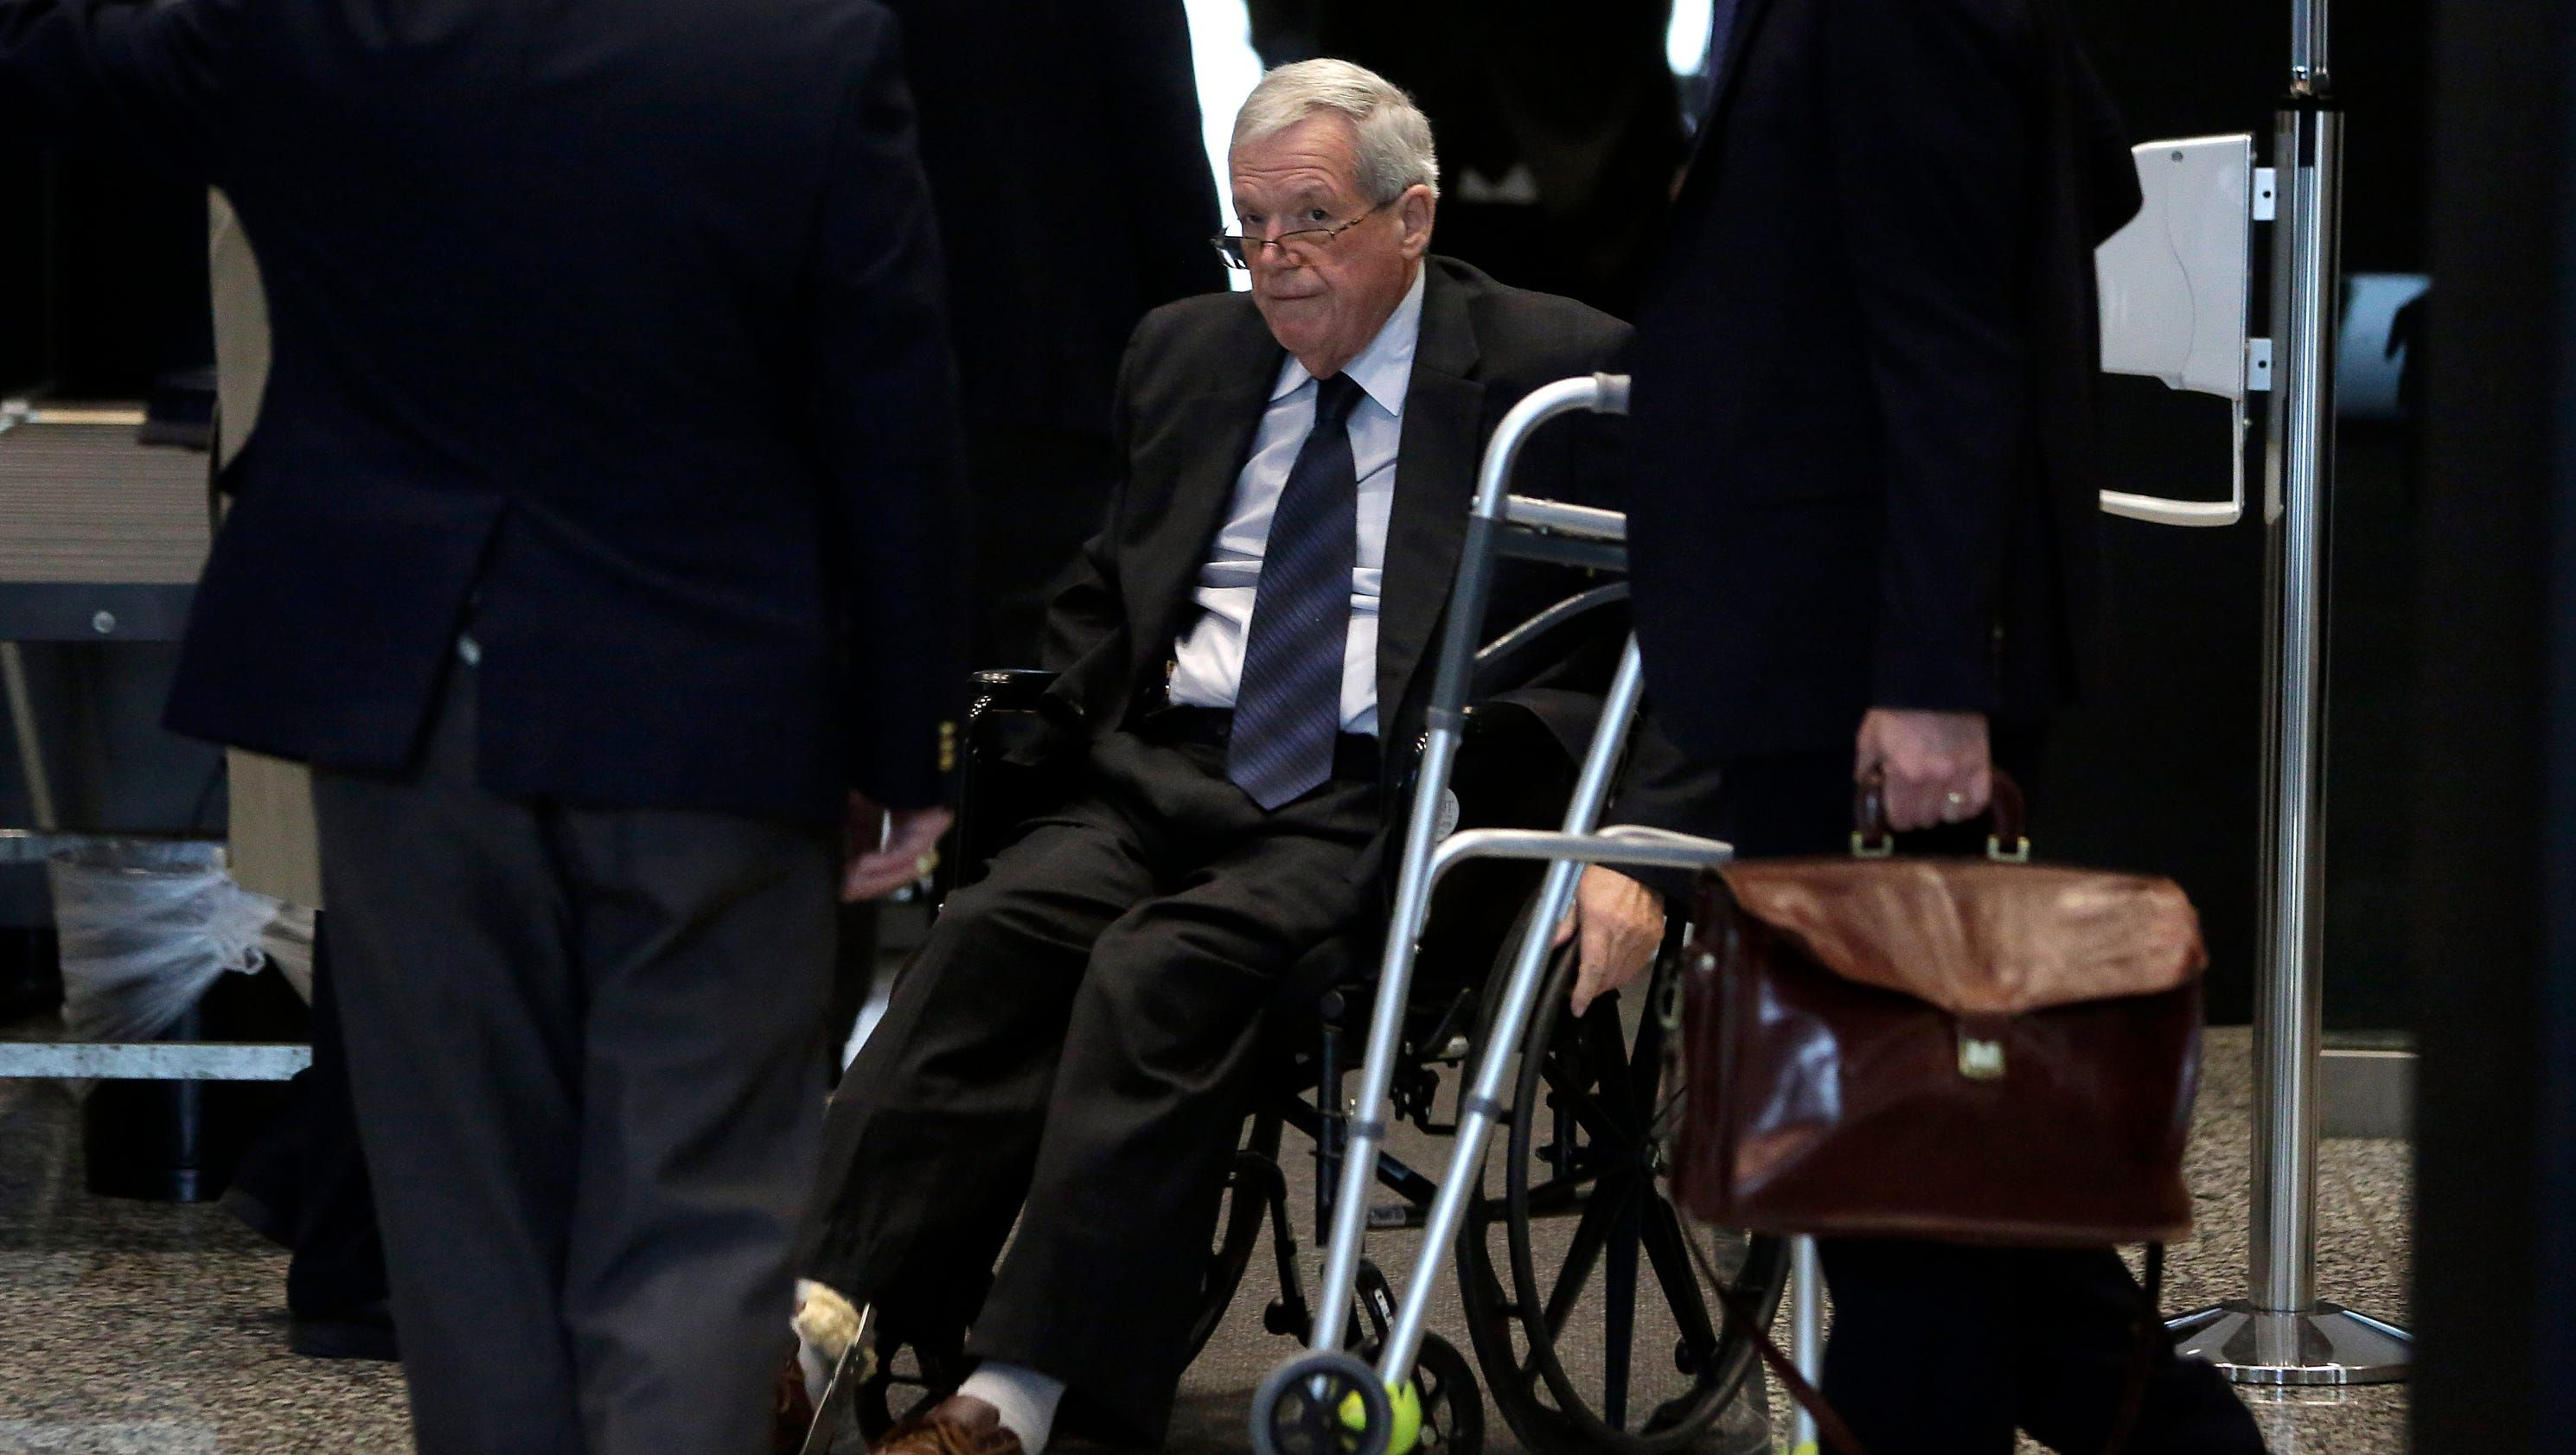 Ex-speaker Dennis Hastert faces sentencing in Chicago - USA TODAY